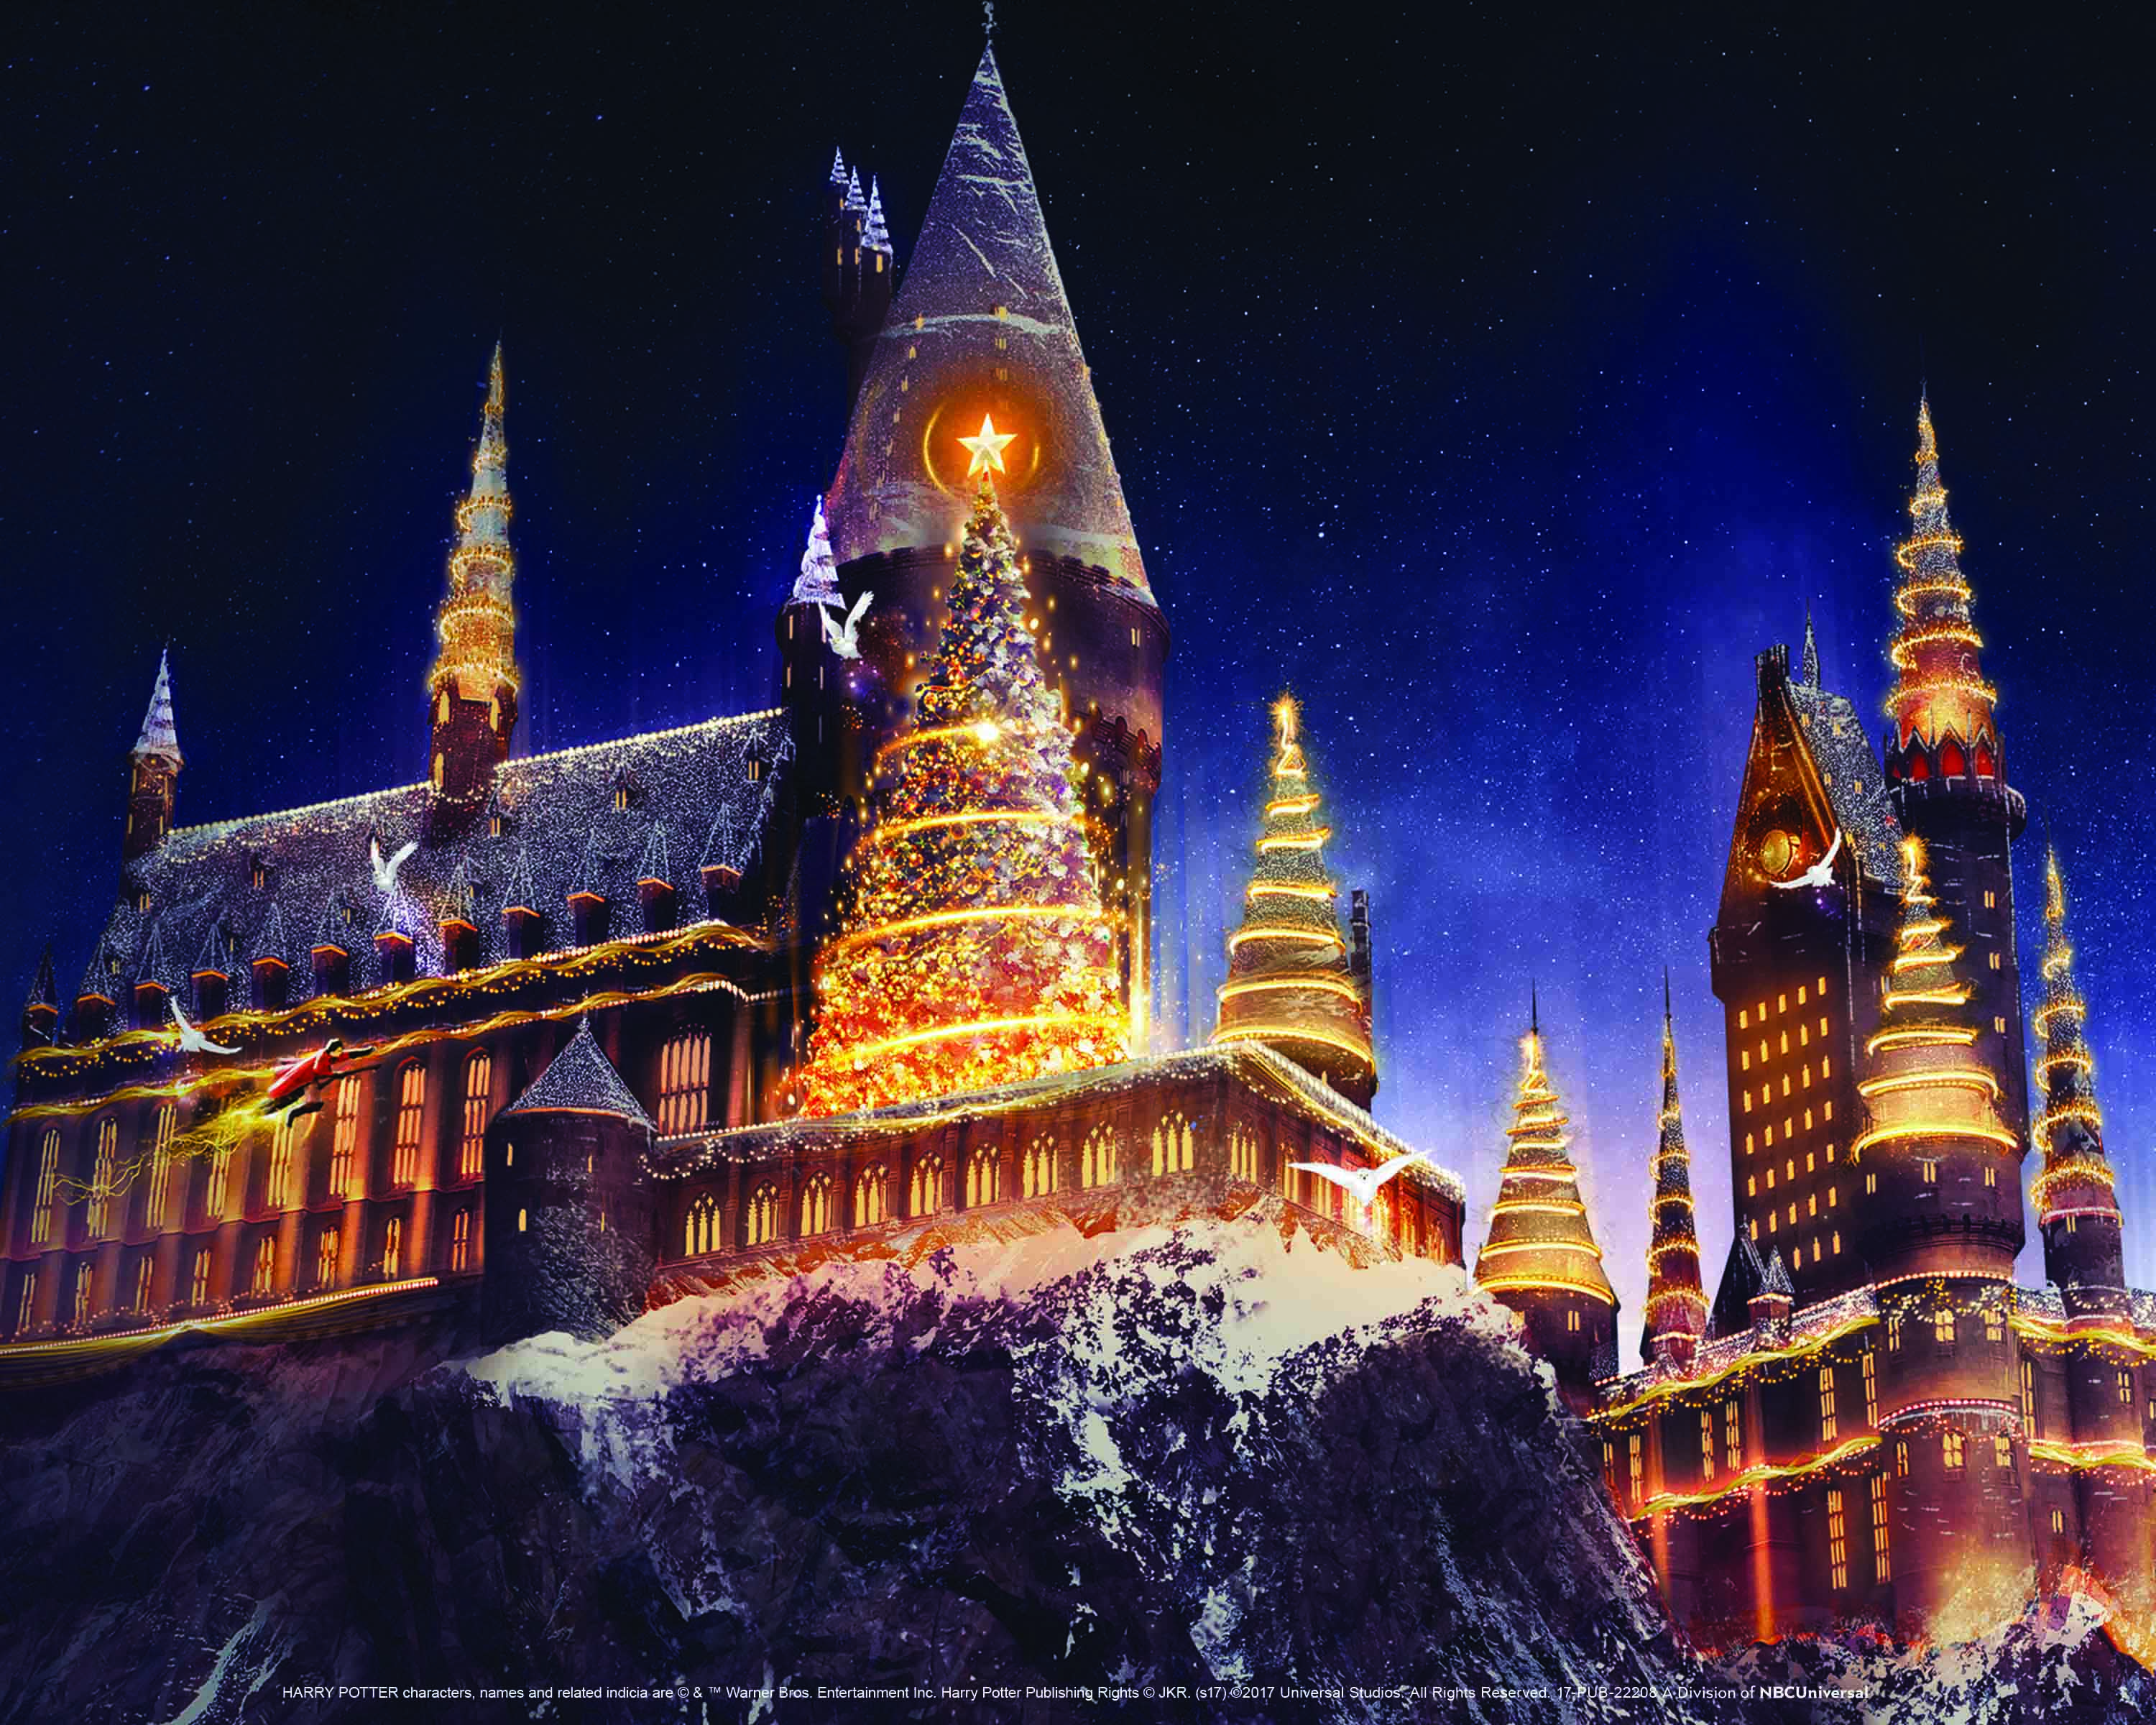 Universal is throwing its biggest Christmas celebration ever